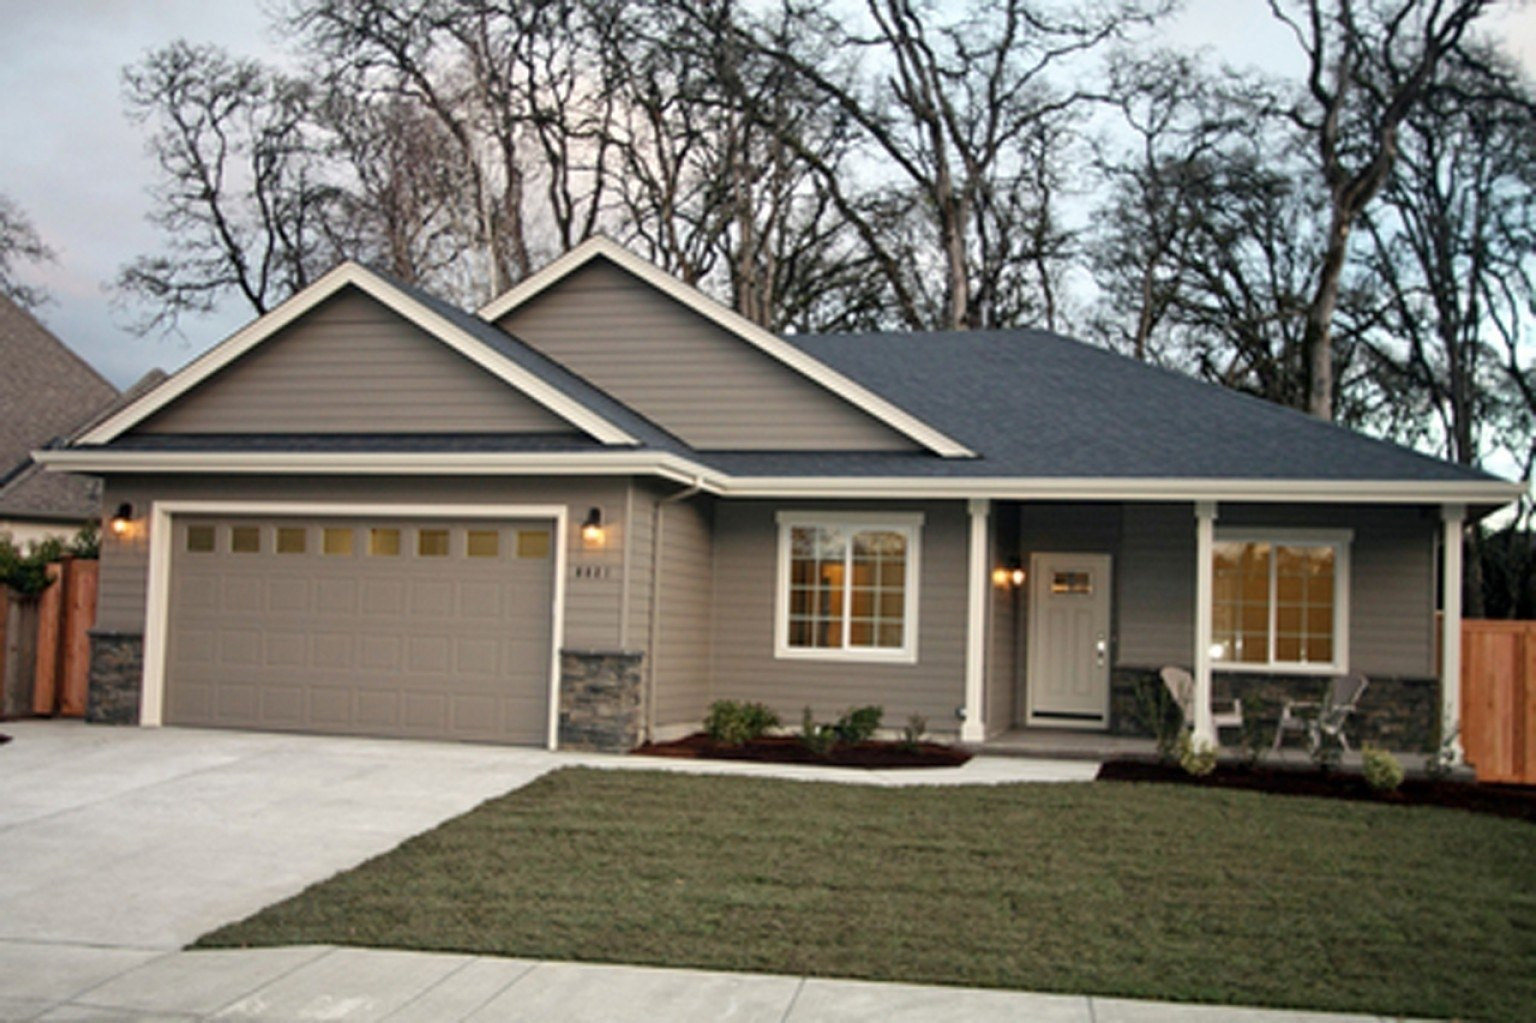 10 Best Exterior Paint Ideas For Ranch Style Homes exterior paint ideas for ranch style homes set home furniture